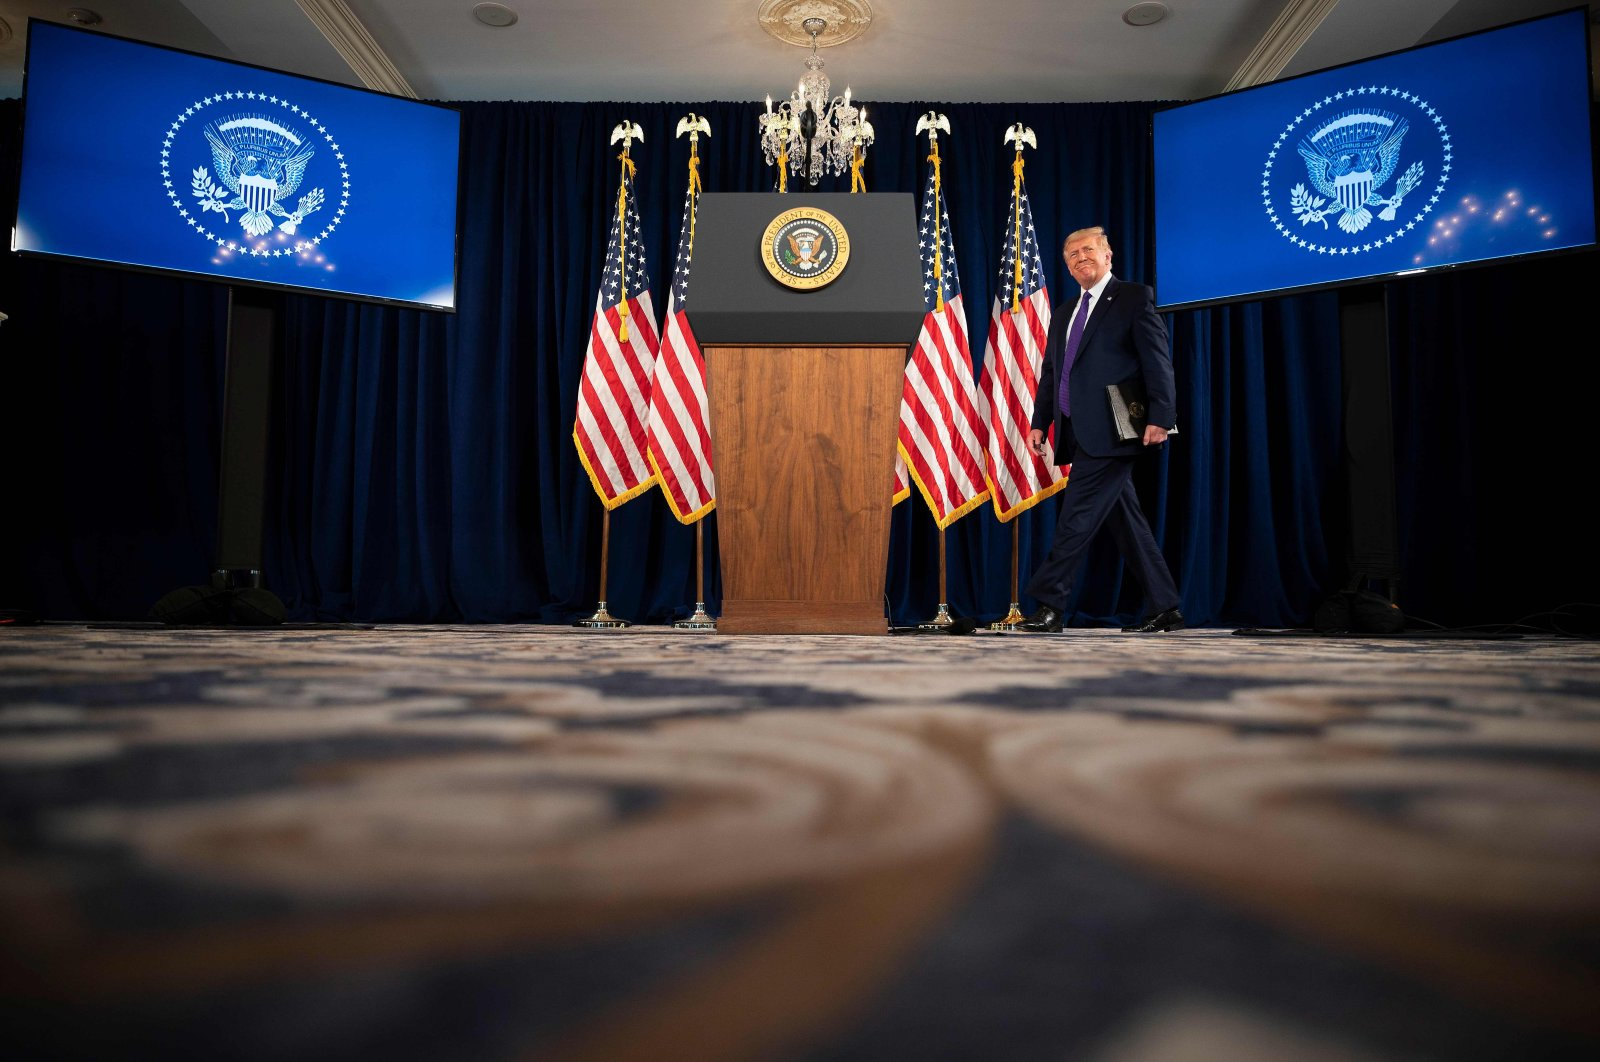 U.S. President Donald Trump arrives to speak at a press conference, Bedminster, New Jersey, U.S., Aug. 15, 2020. (AFP Photo)